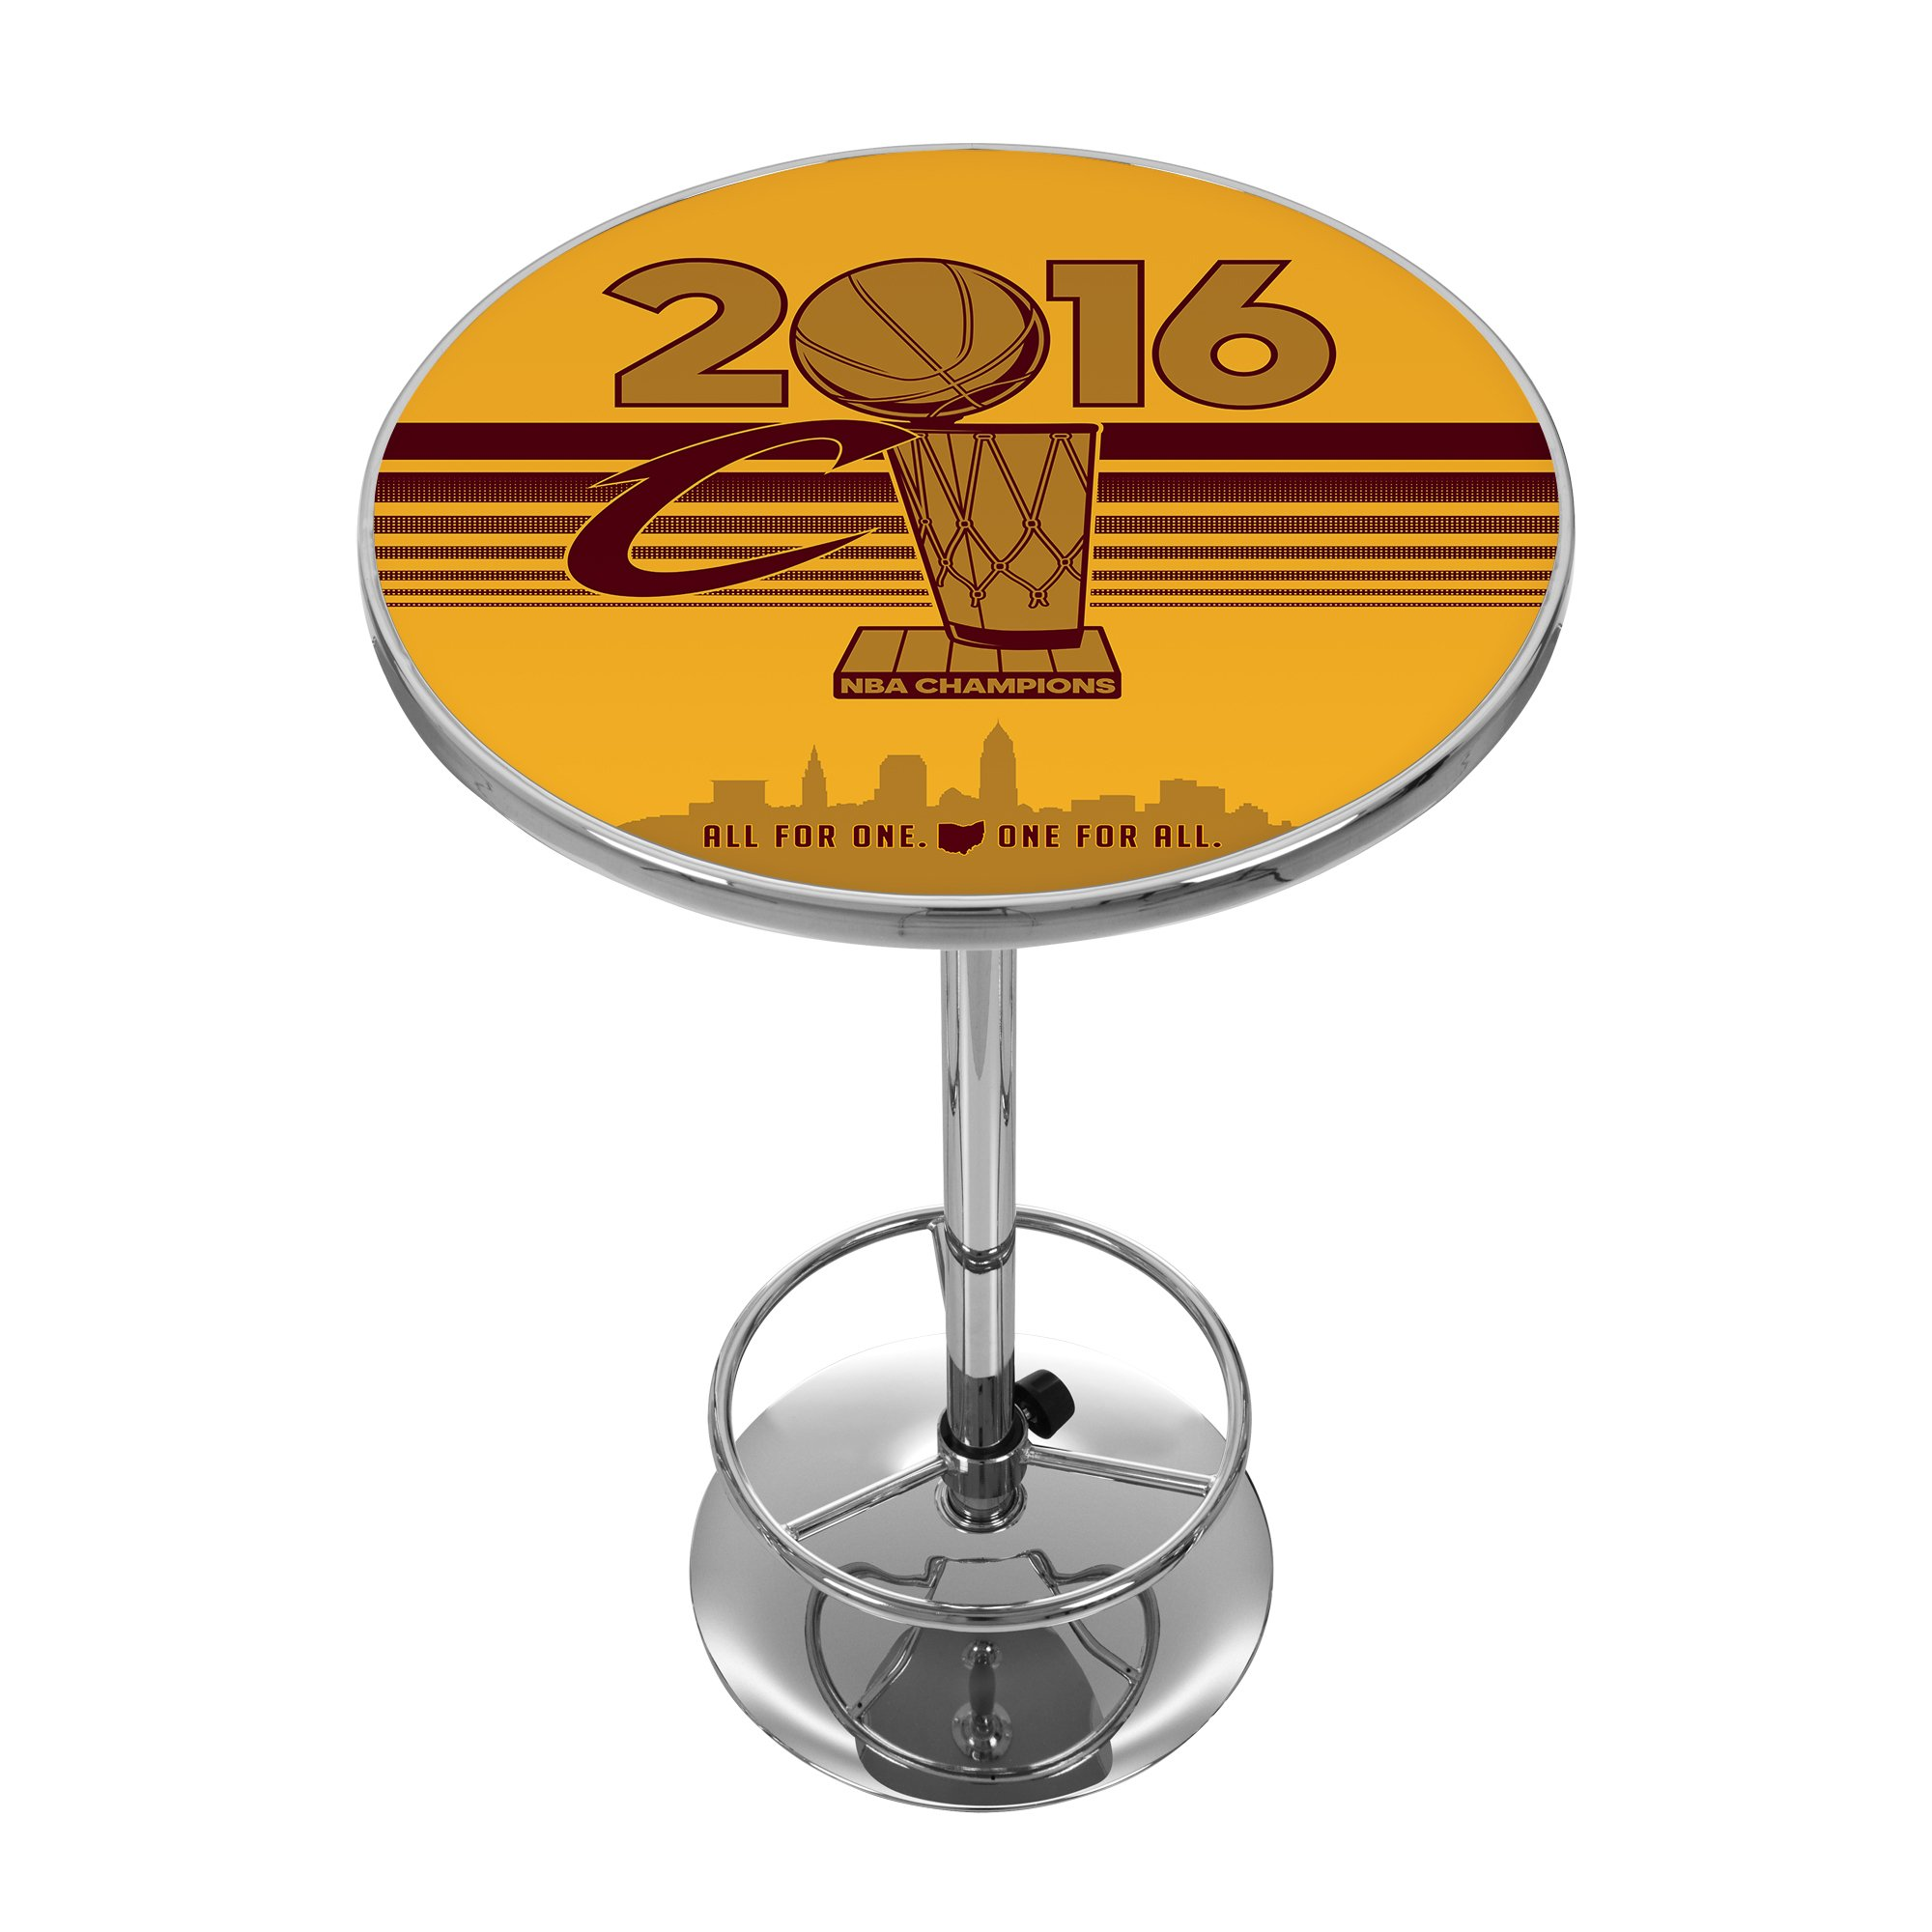 NBA Cleveland Cavaliers 2016 Chamipons Chrome Pub Table, Wine/Gold, One Size